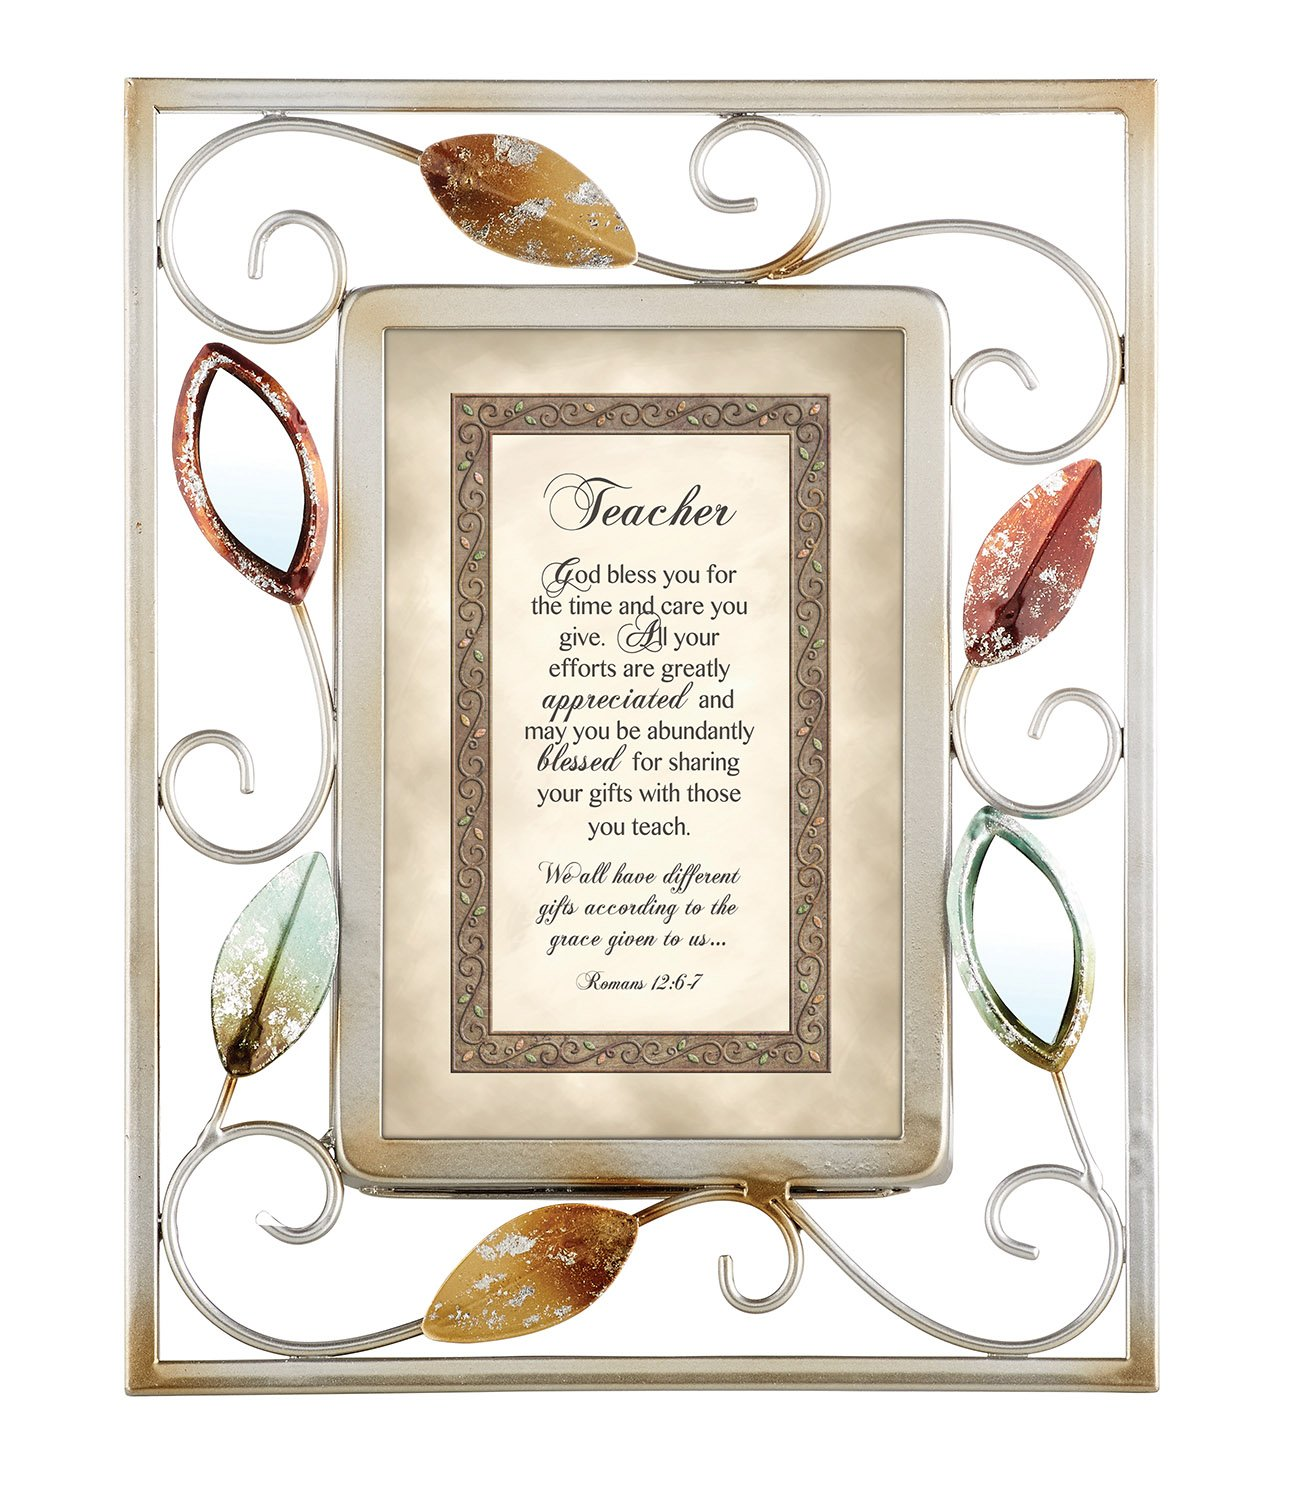 CB Gift Heartwarming Expressions Heartfelt Appreciation Metal Framed Print -Parent